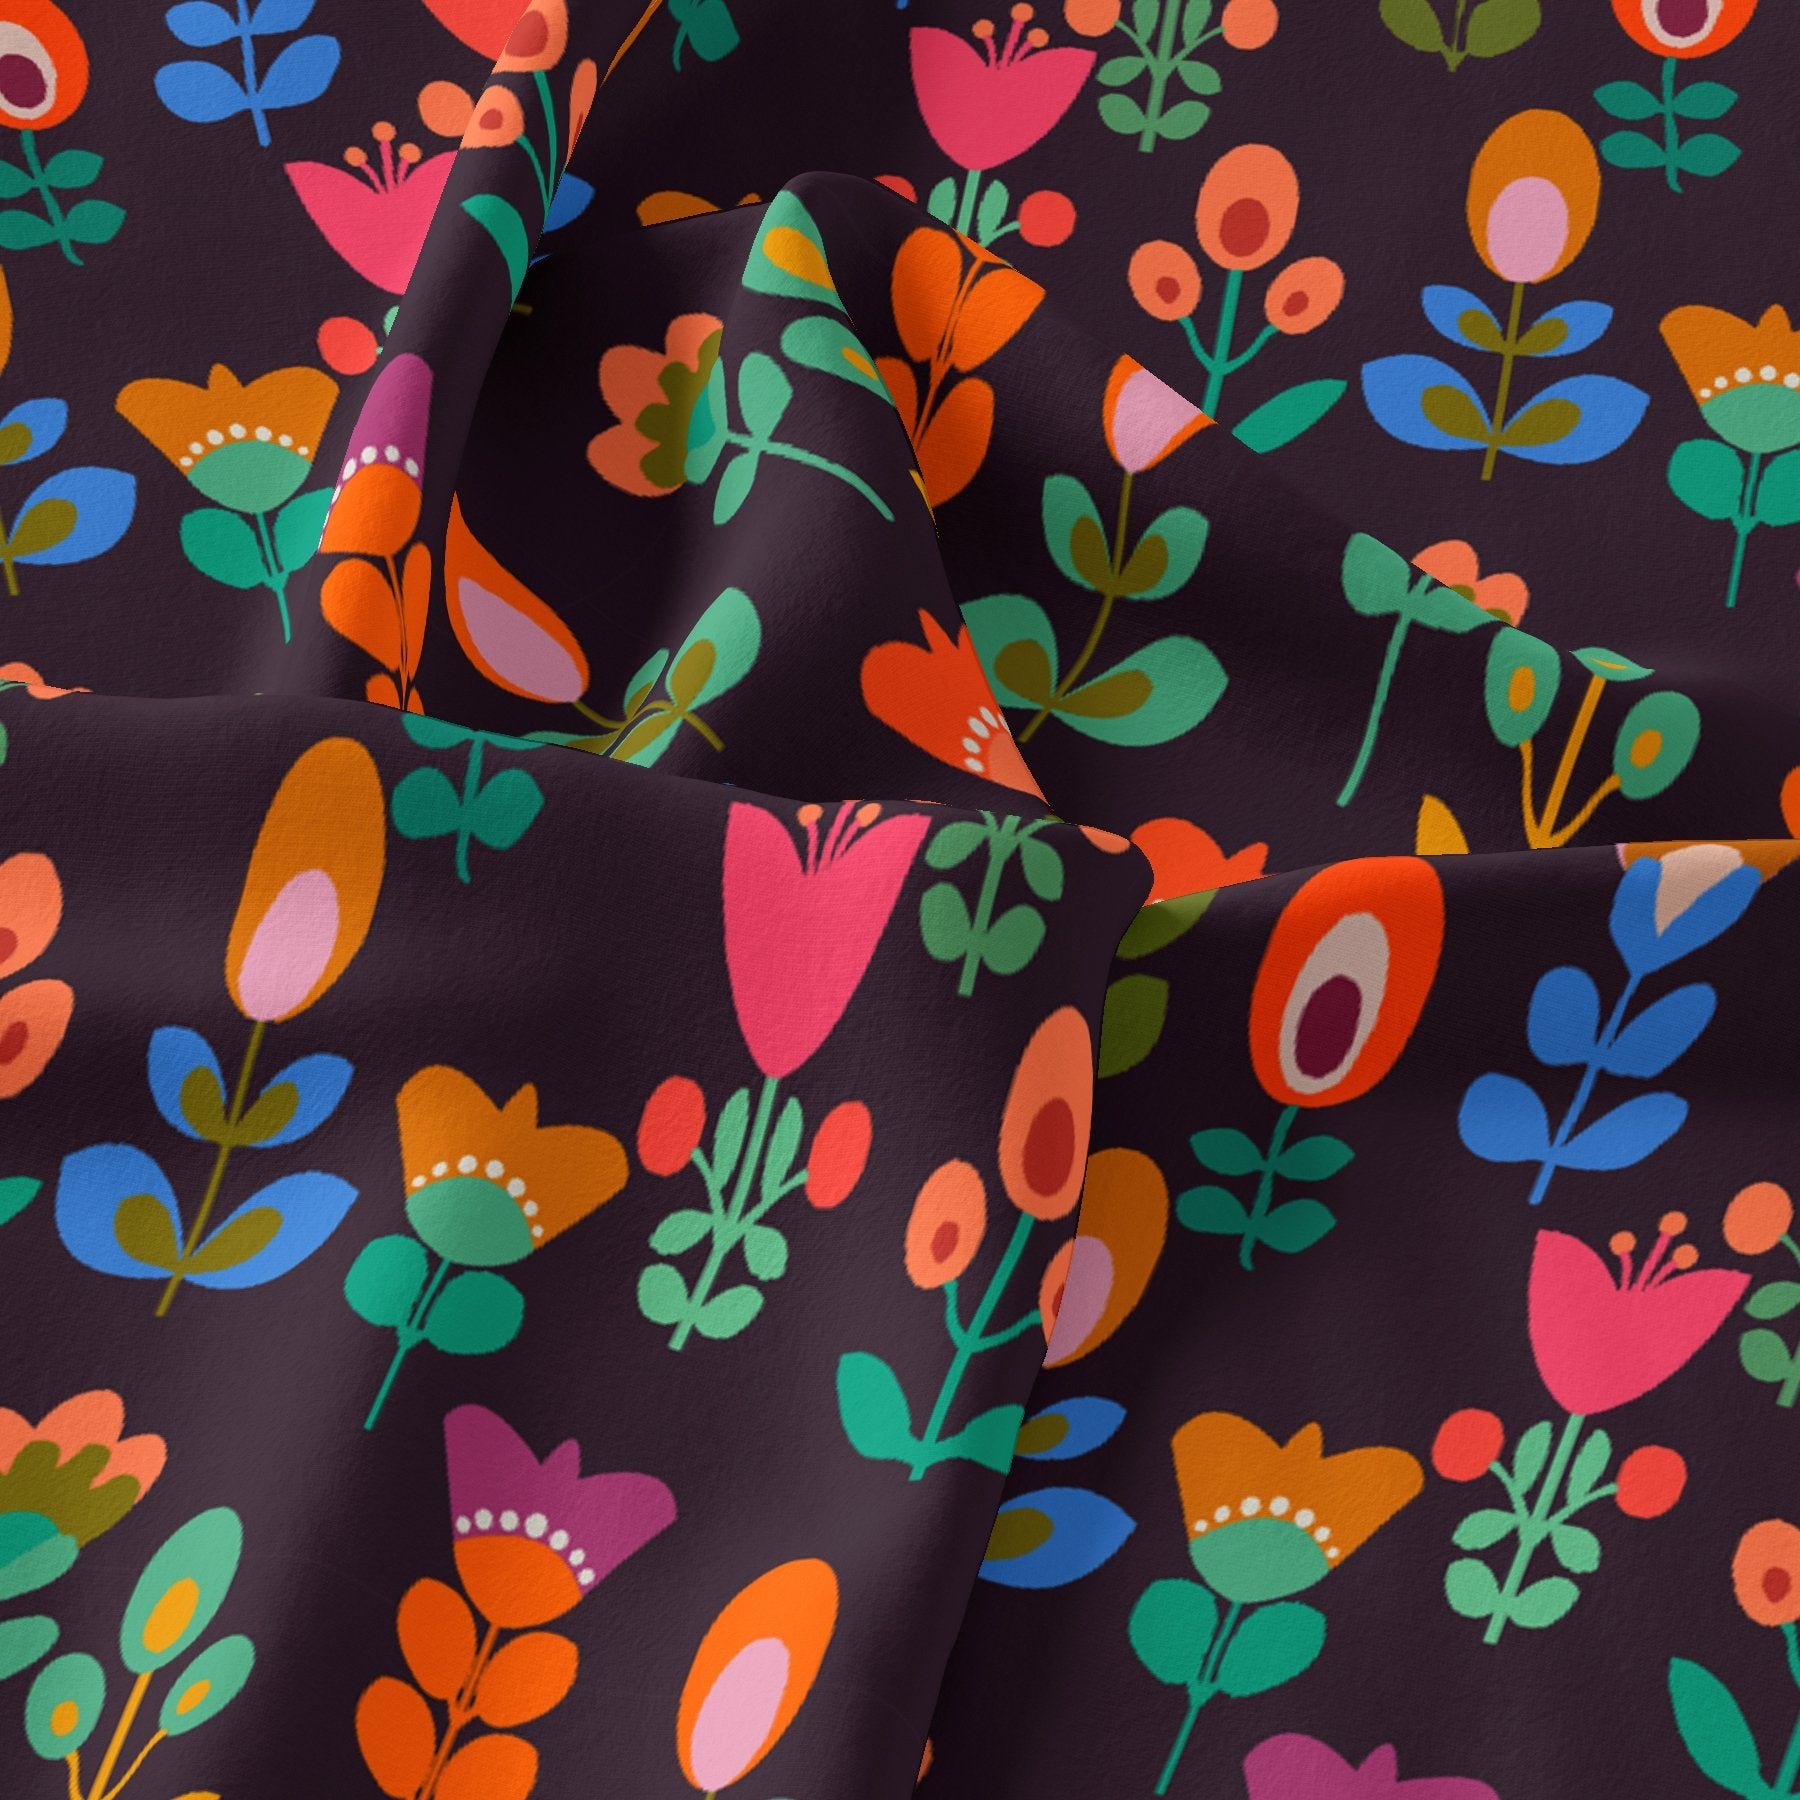 Sketchy Flowers Pattern Digital Printed Fabric - Upada Silk